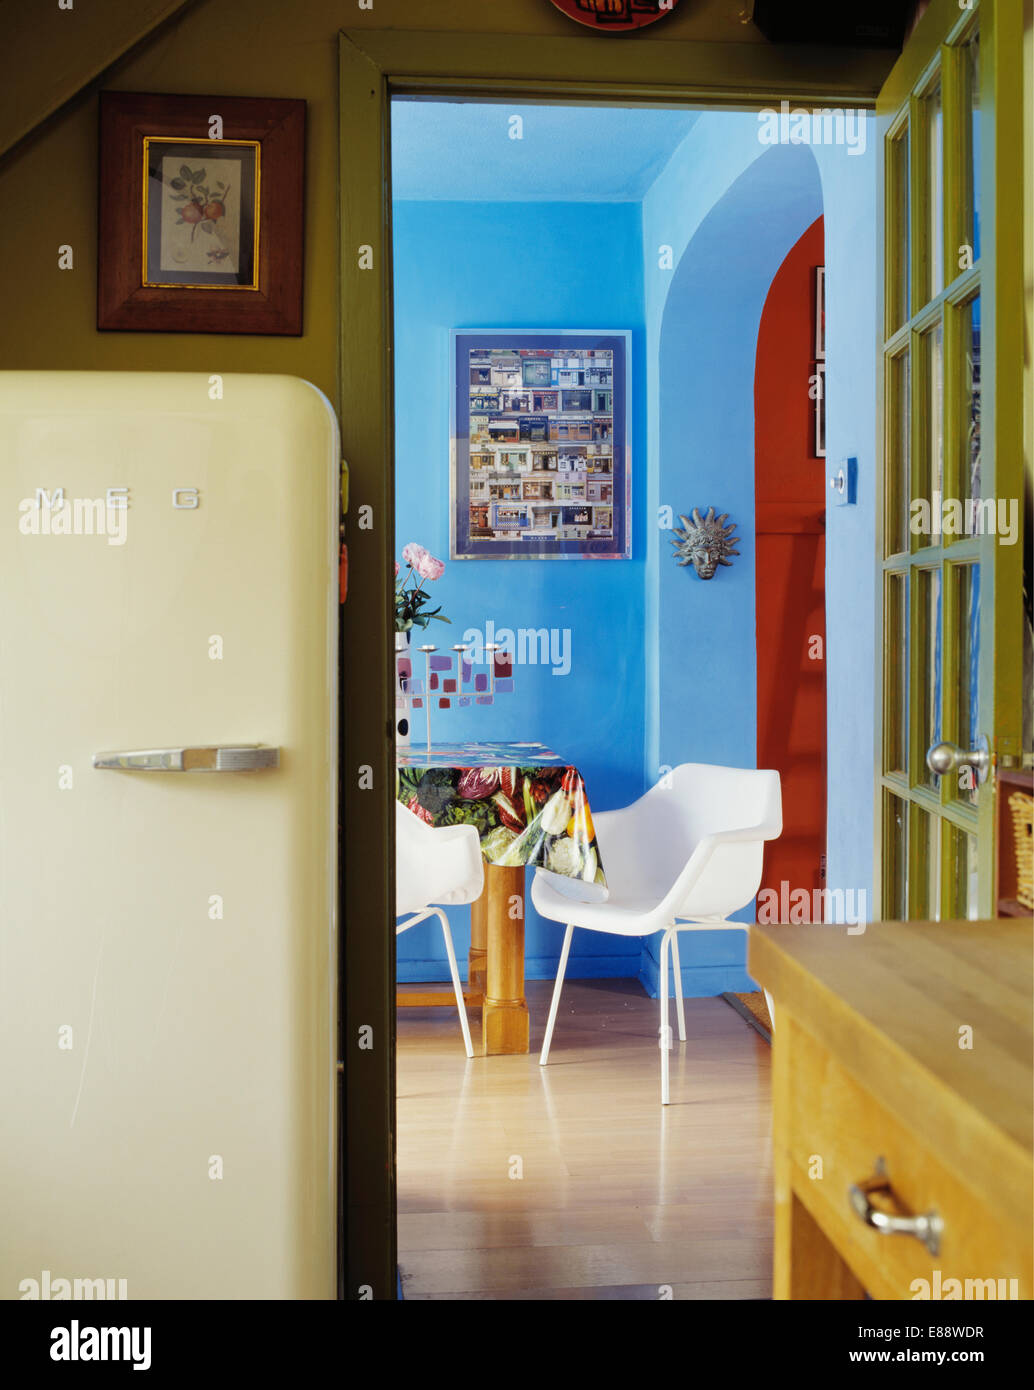 Kitchen with large cream Smeg refrigerator beside doorway to blue ...